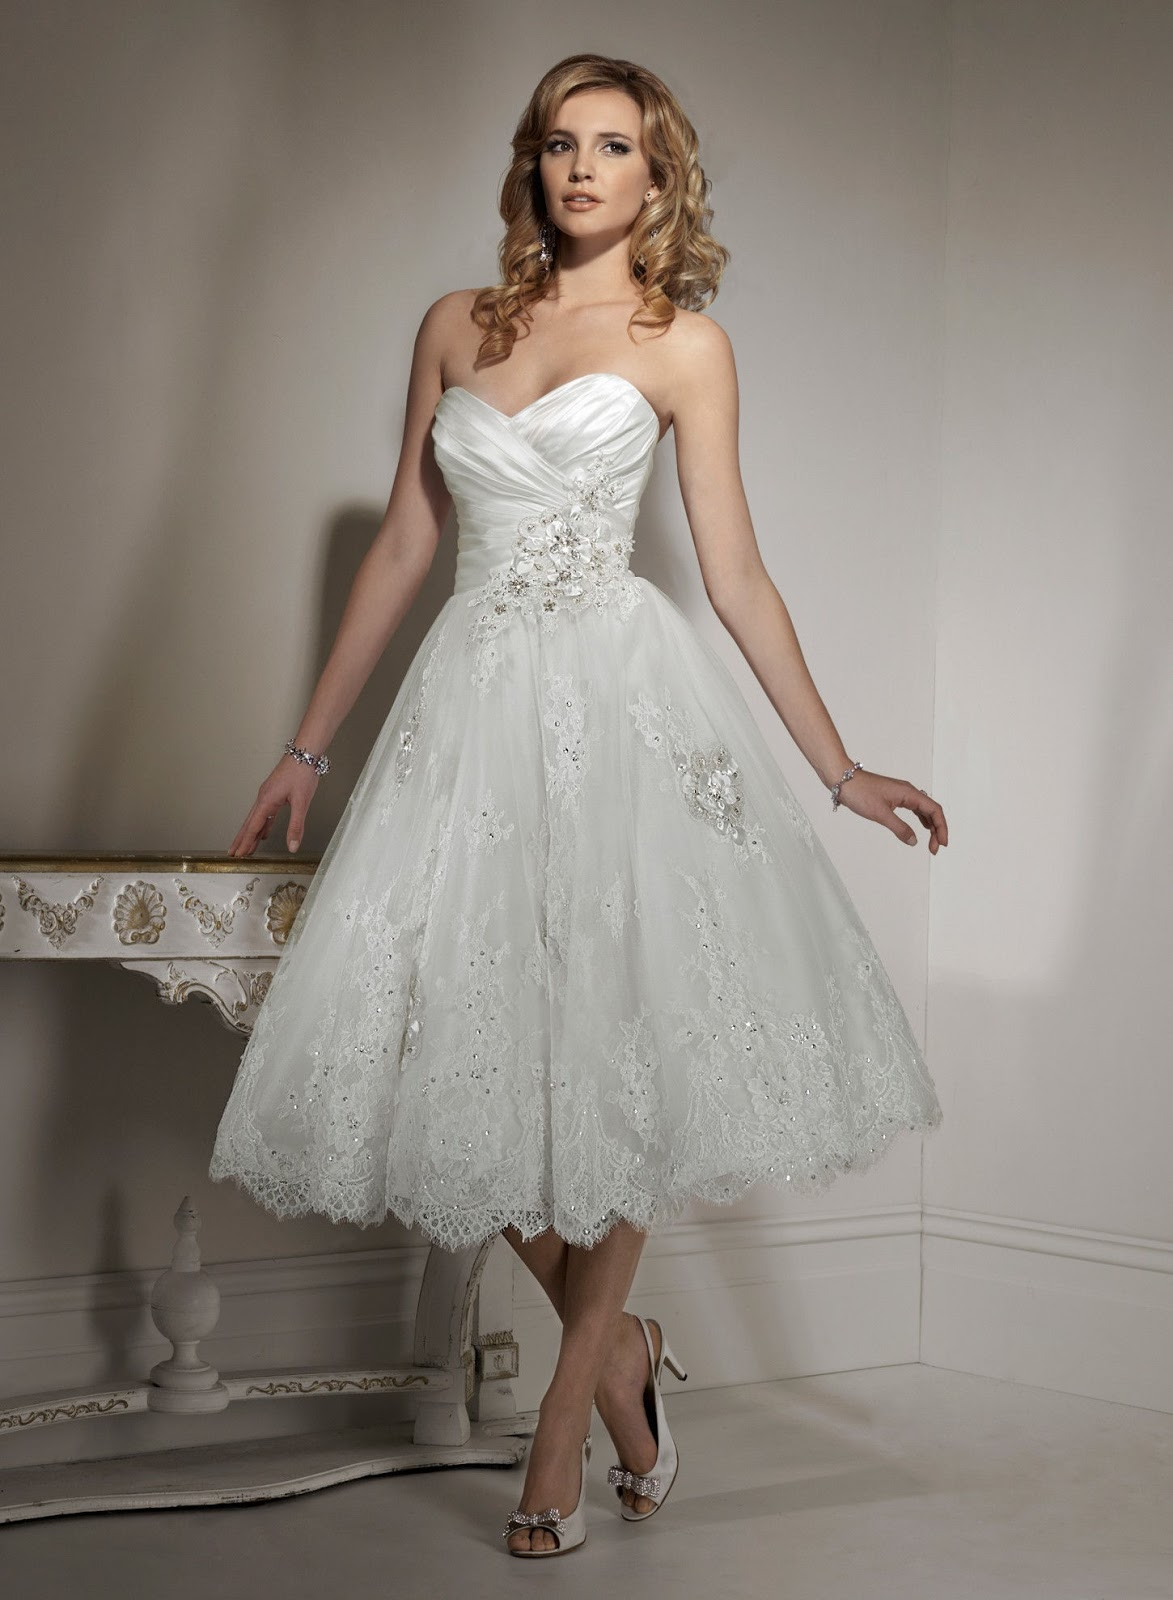 wedding dresses for petite brides formal dresses for weddings wedding gowns for petite brides dillards petite dresses petite formal dresses petite dresses